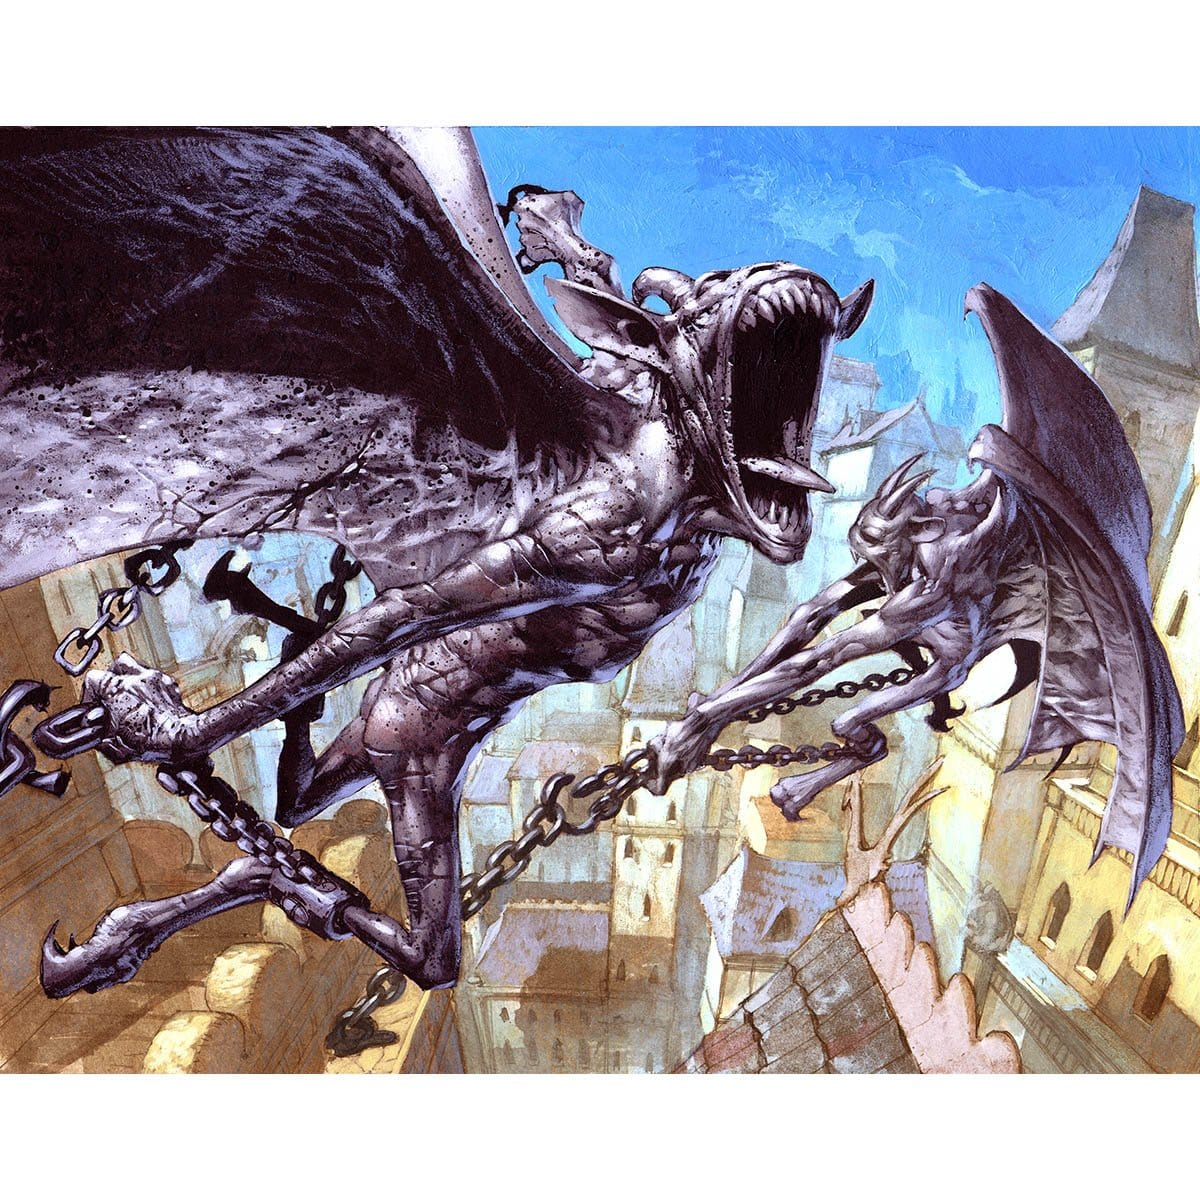 Wakestone Gargoyle Print - Print - Original Magic Art - Accessories for Magic the Gathering and other card games